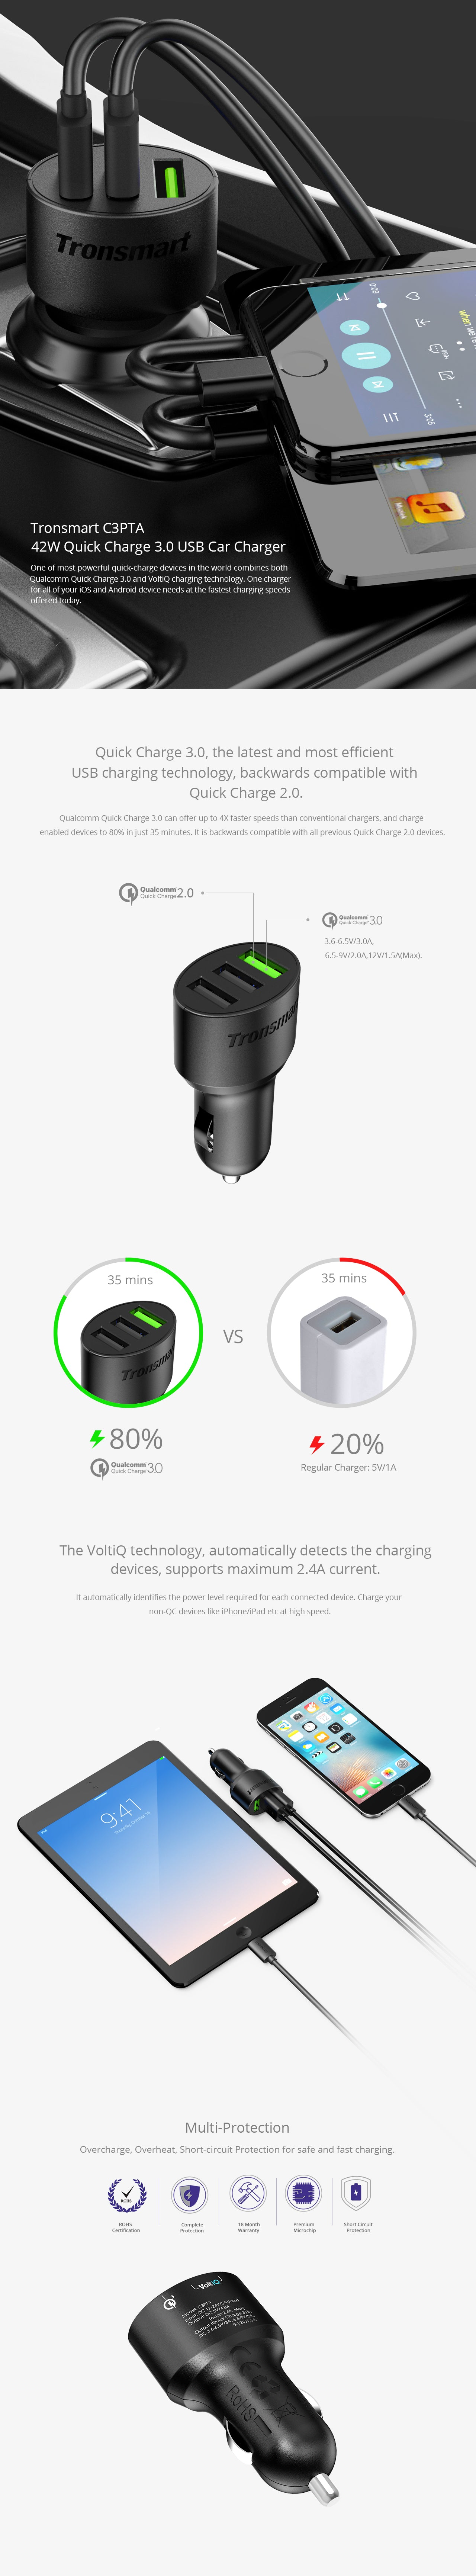 TRONSMART TS-C3PTA 42W 3-PORT USB CAR CHARGER WITH QUALCOMM QUICK CHARGE 3.0 AND VOLTIQ TECHNOLOGY